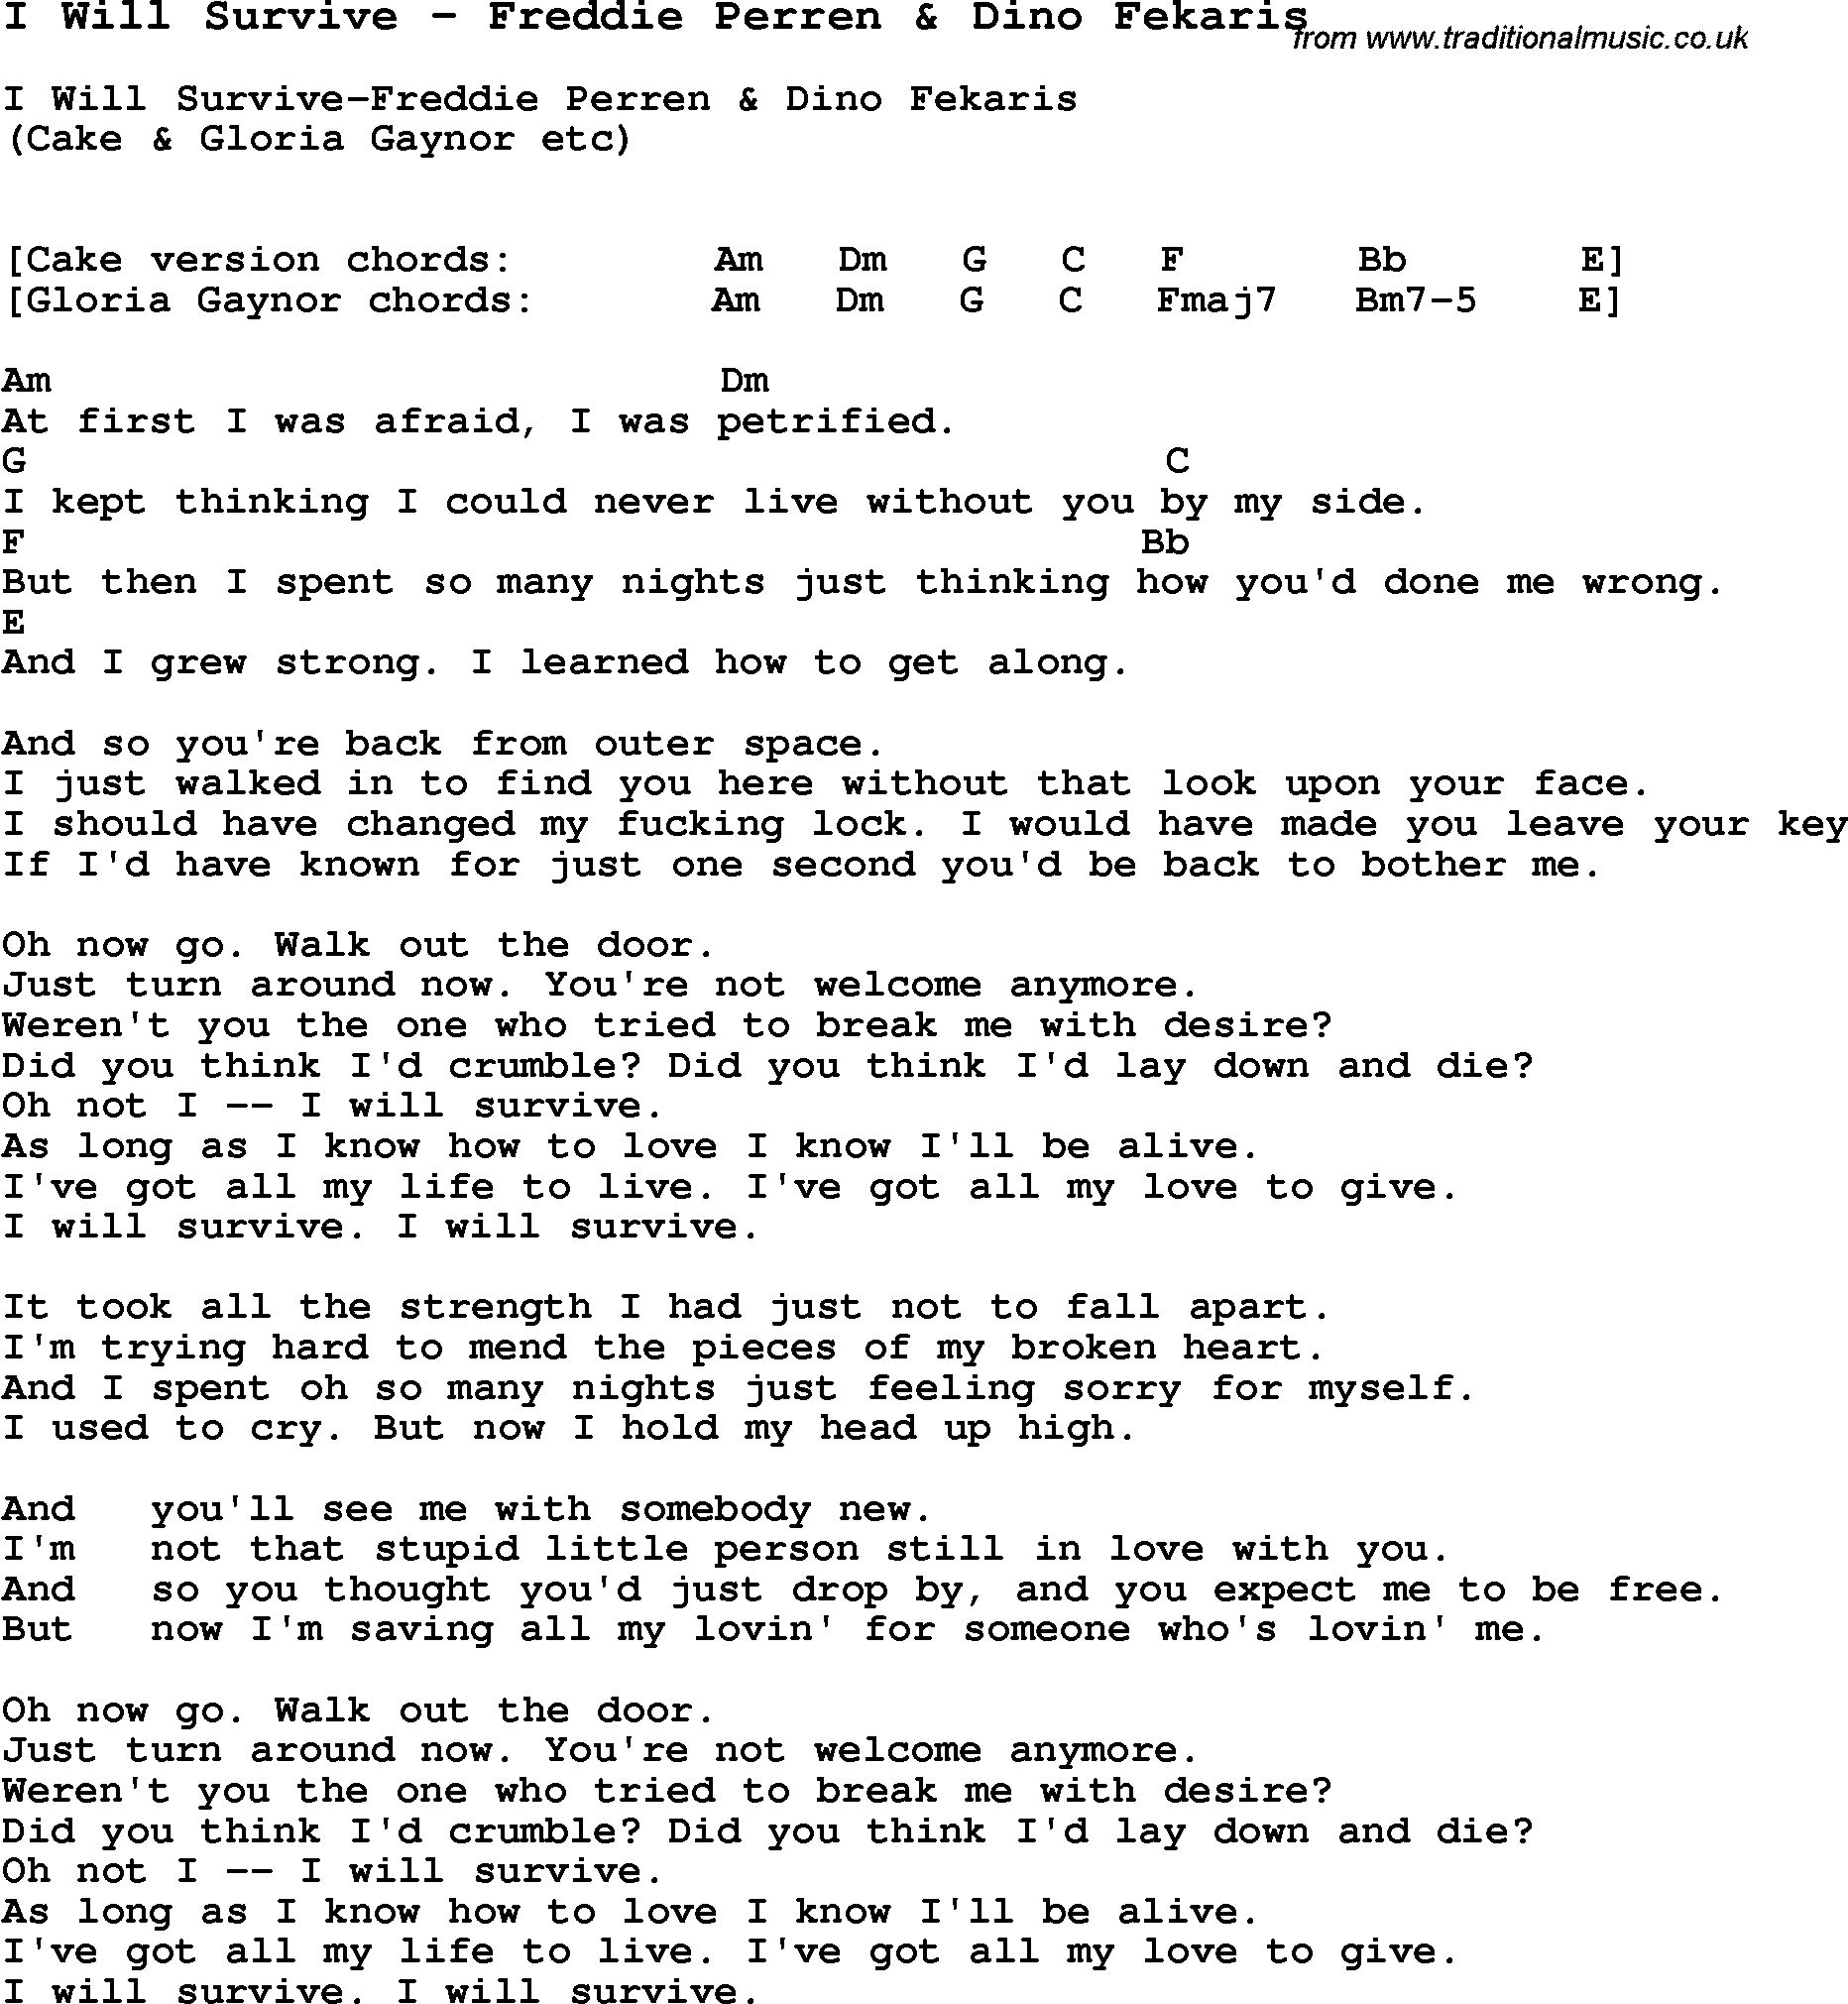 Song I Will Survive By Freddie Perren Dino Fekaris With Lyrics